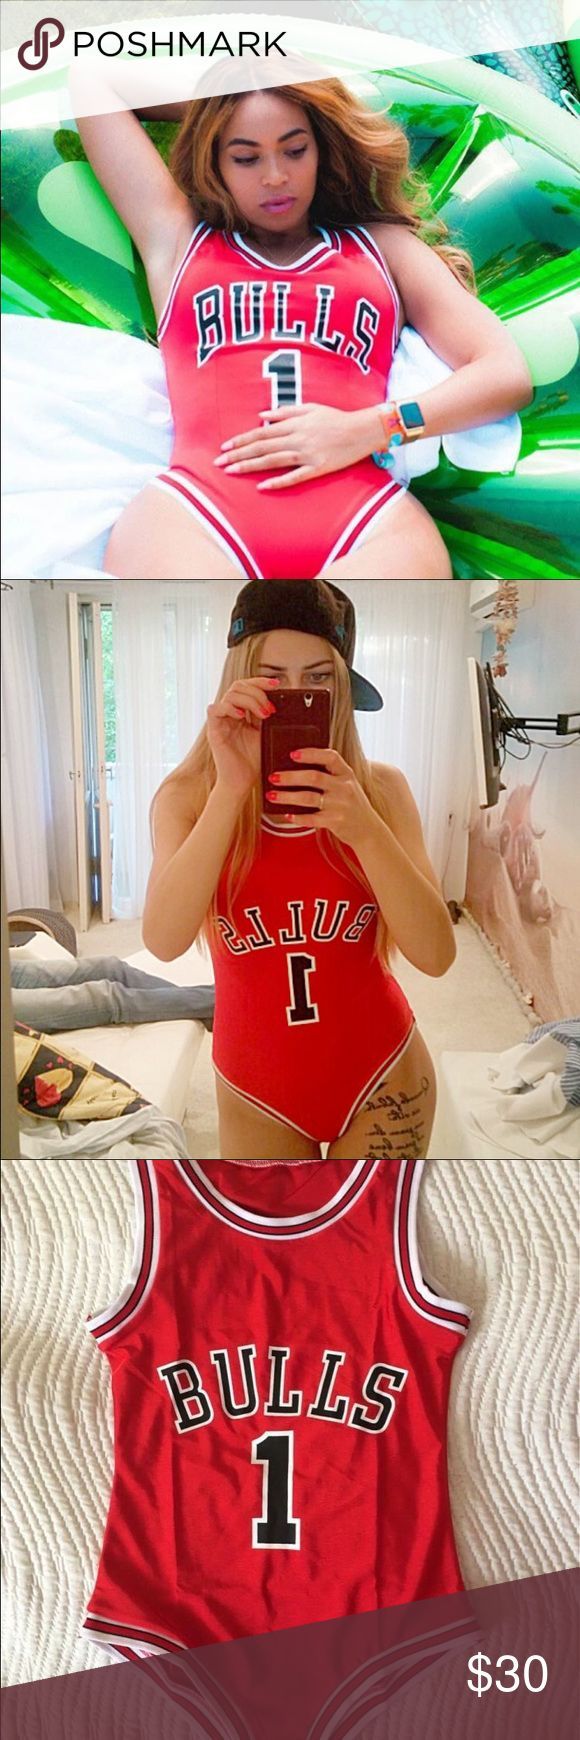 Beyoncé BULLS Red Bodysuit Jersey Sizes S-XL  ♦️♦️ MUST HAVE TREND ♦️♦️  Selling BRAND NEW Red Beyoncé BULLS Bodysuit ONLY $30!!  In stock in Sizes S-XL!!   BEST SELLER! VERY stylish. Perfect as a swimsuit or wear with jeans for a chic OOTD! ️ ⋅ Please Comment below the size   ANY 2 Bodysuits (Mix & Match DOPE Bodysuits in Black, White or Bae Watch Bodysuit) any 2/$50!    Real customer feedback photos added!! (Second & Fourth picture) Forever 21 Swim One Pieces